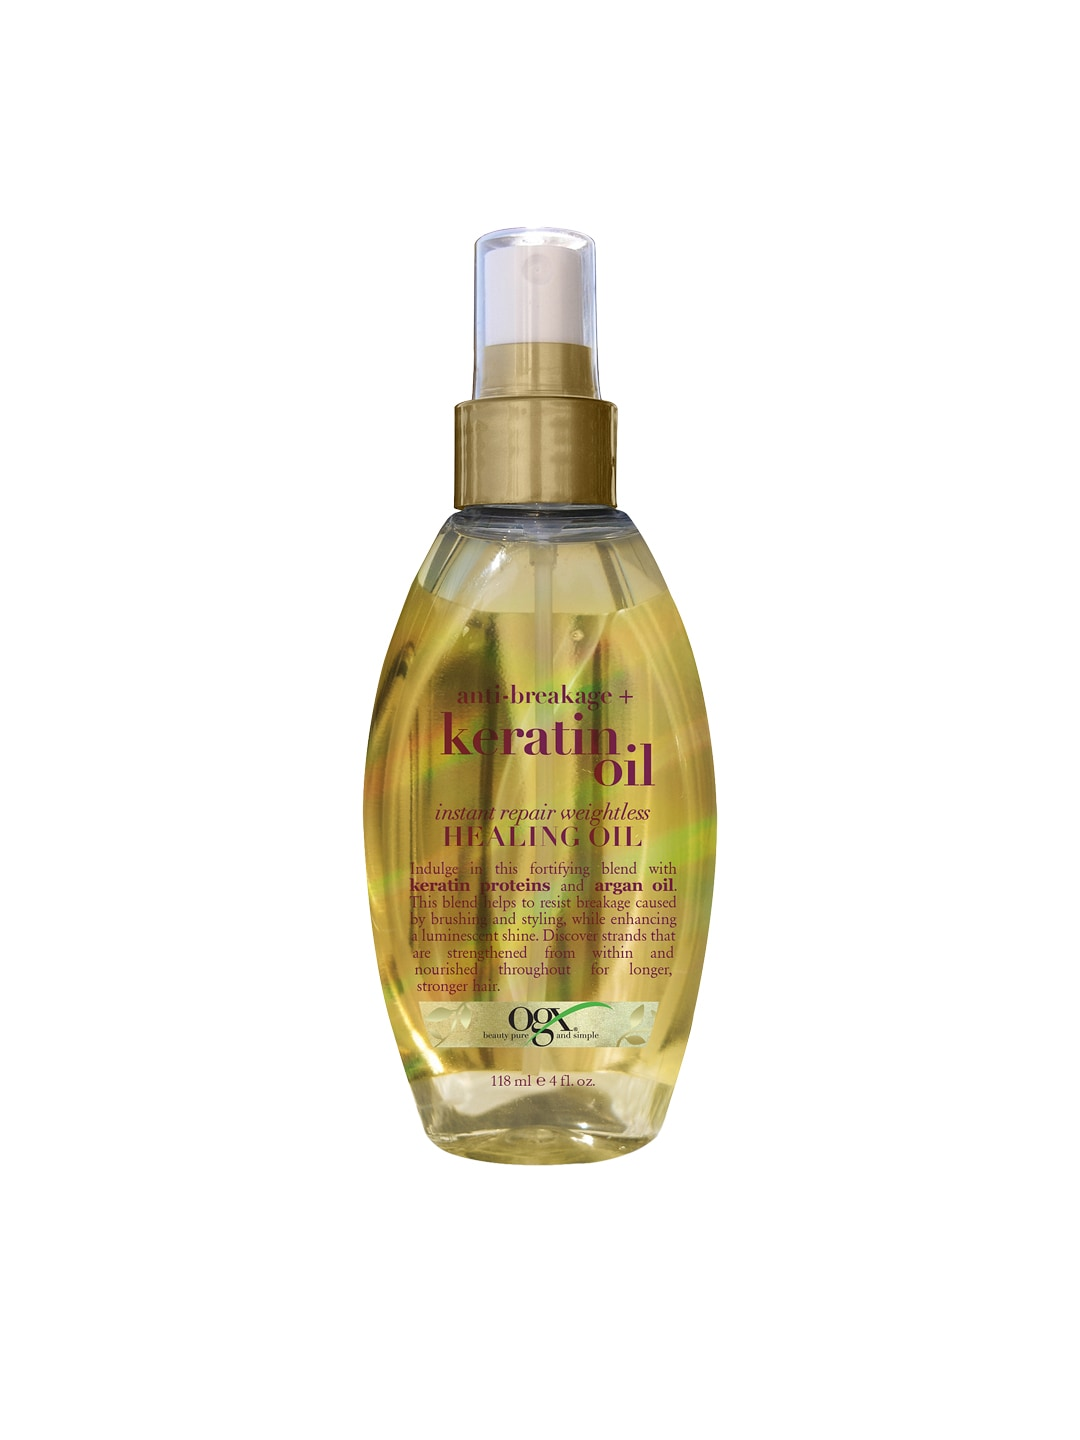 OGX Anti-Breakage Instant Repair Weightless Healing Keratin Hair Oil image